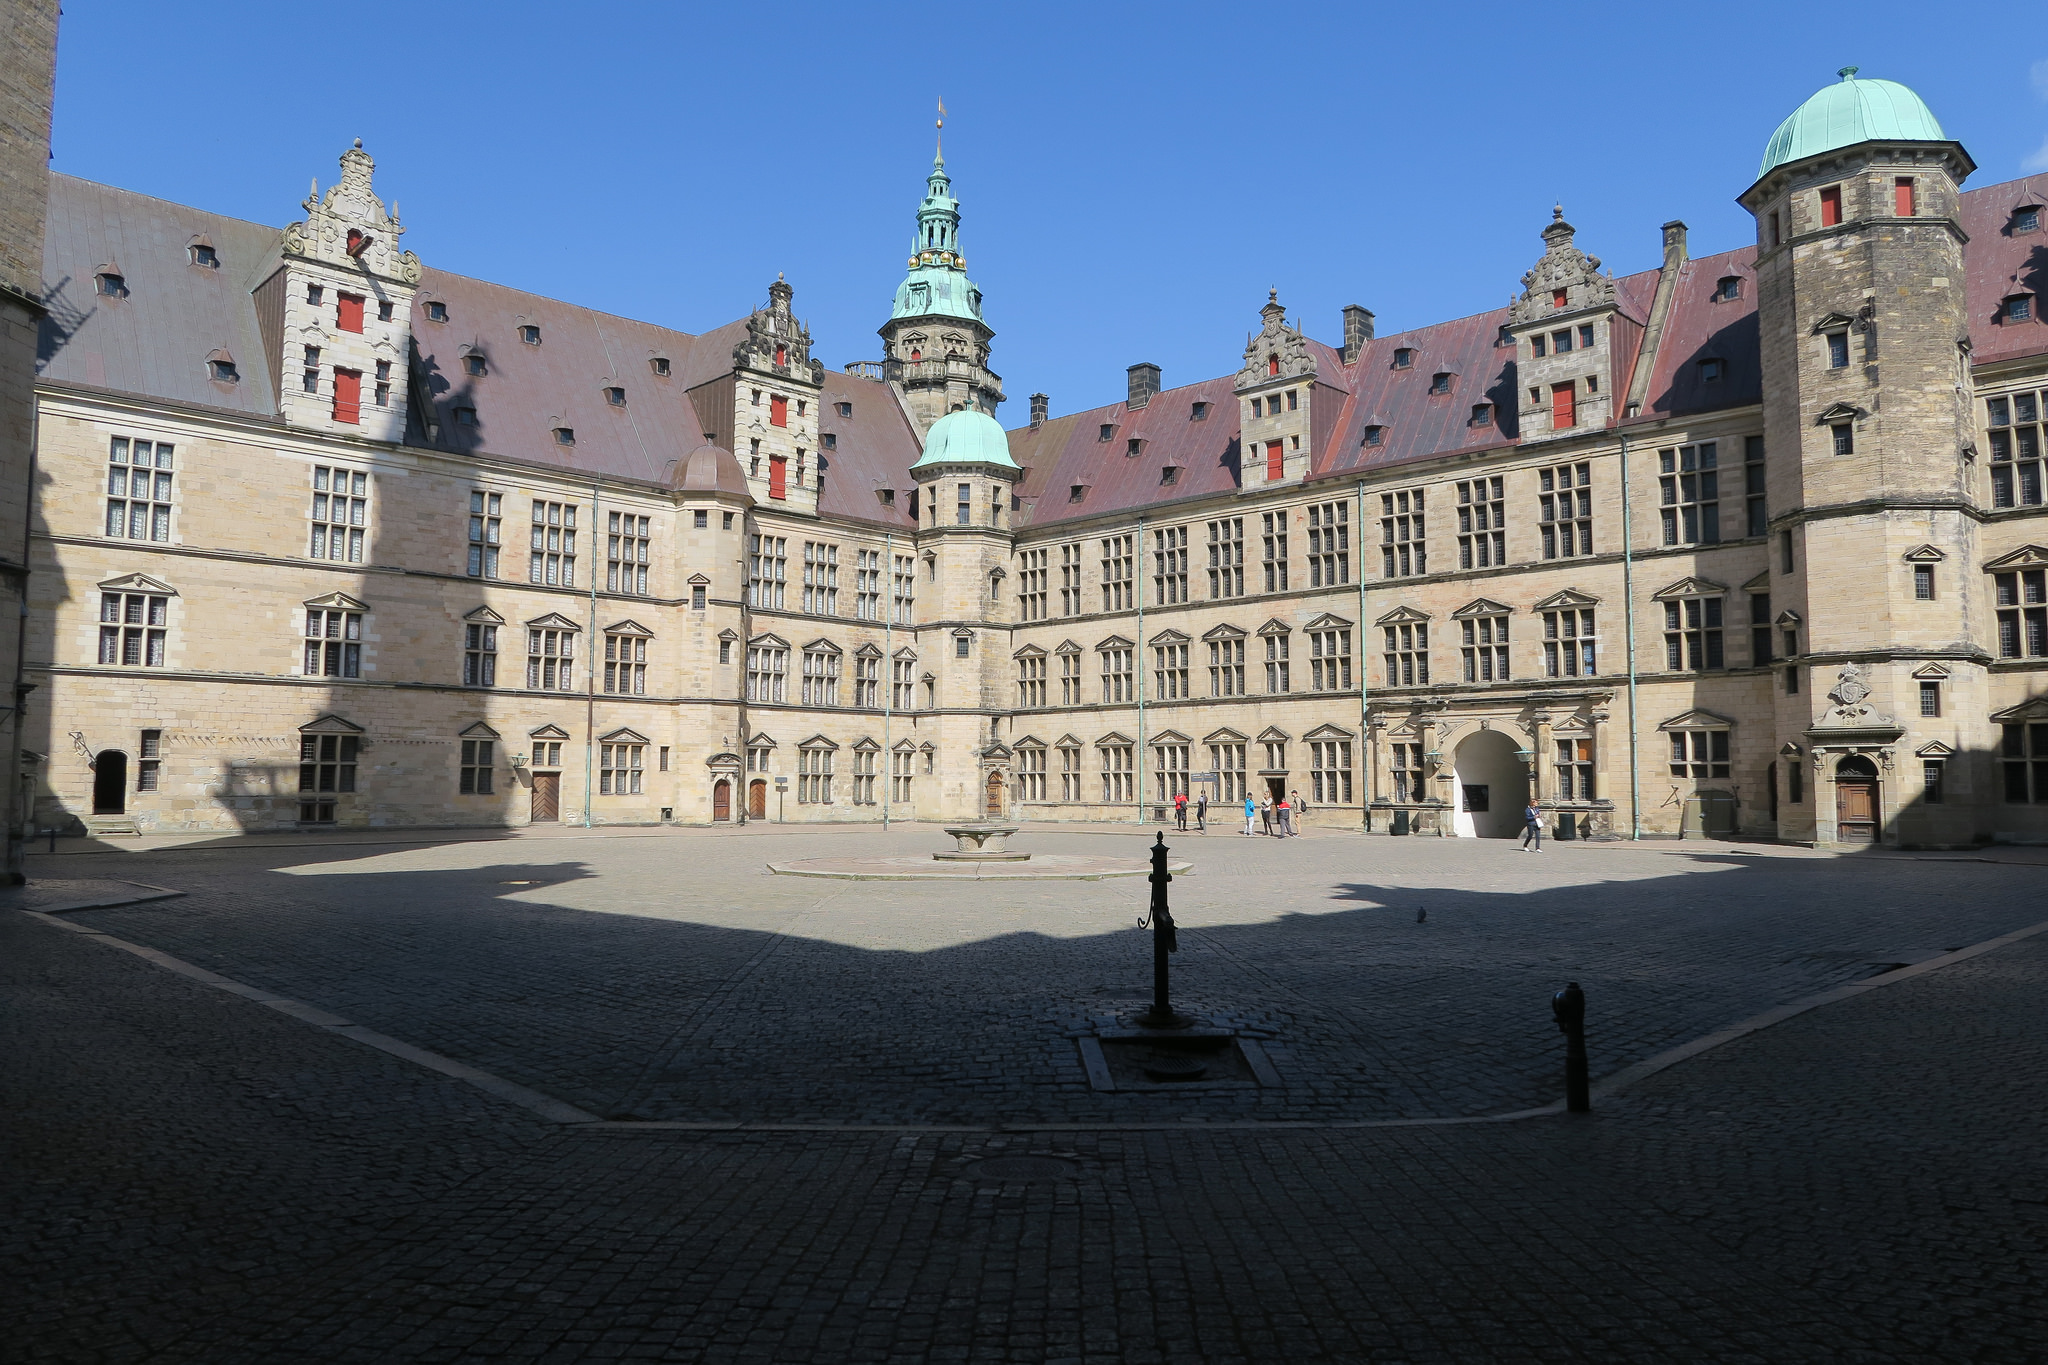 SEE & DO: KRONBORG CASTLE - UNESCO